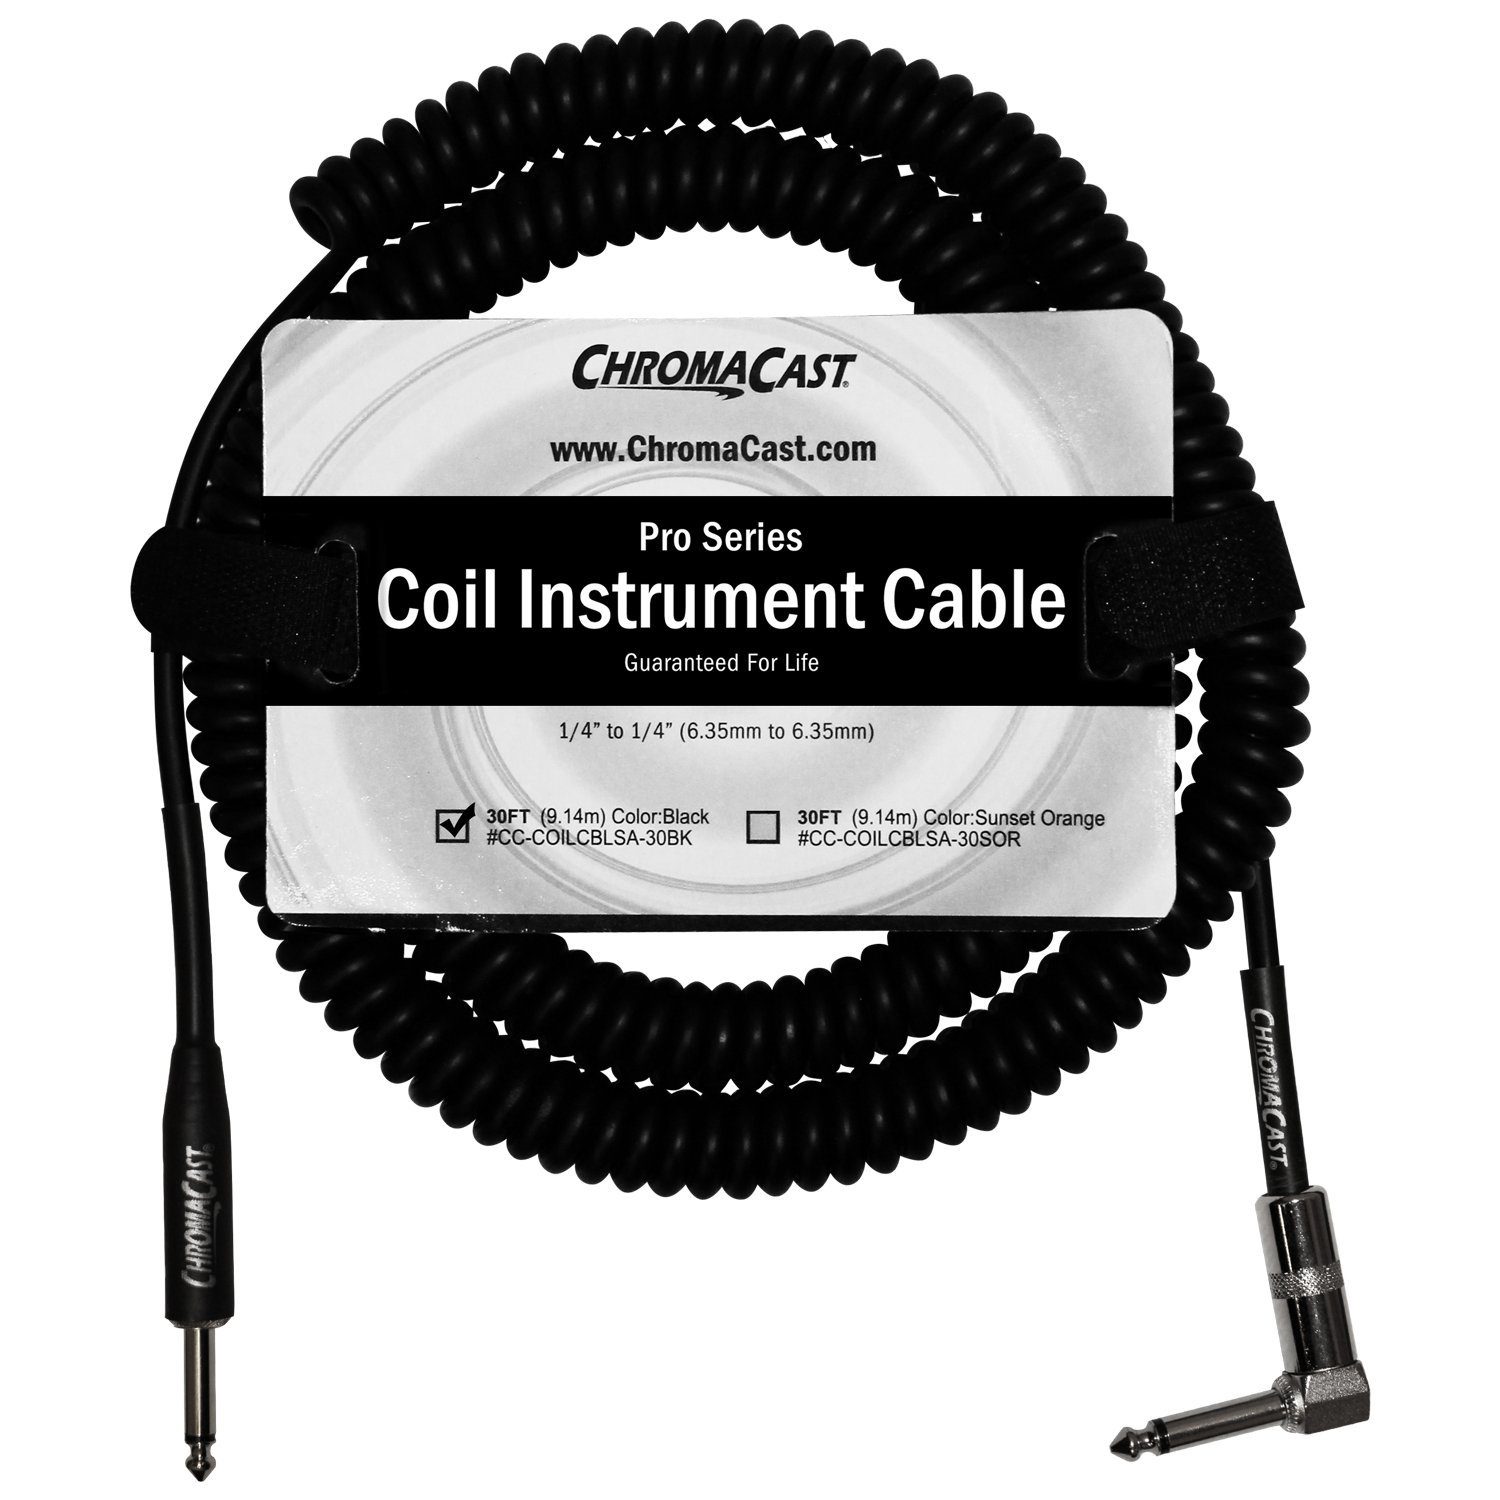 "ChromaCast Pro Series Coil Instrument Cable 30 Feet, Black, 1 4"" Straight- 1... by ChromaCast"